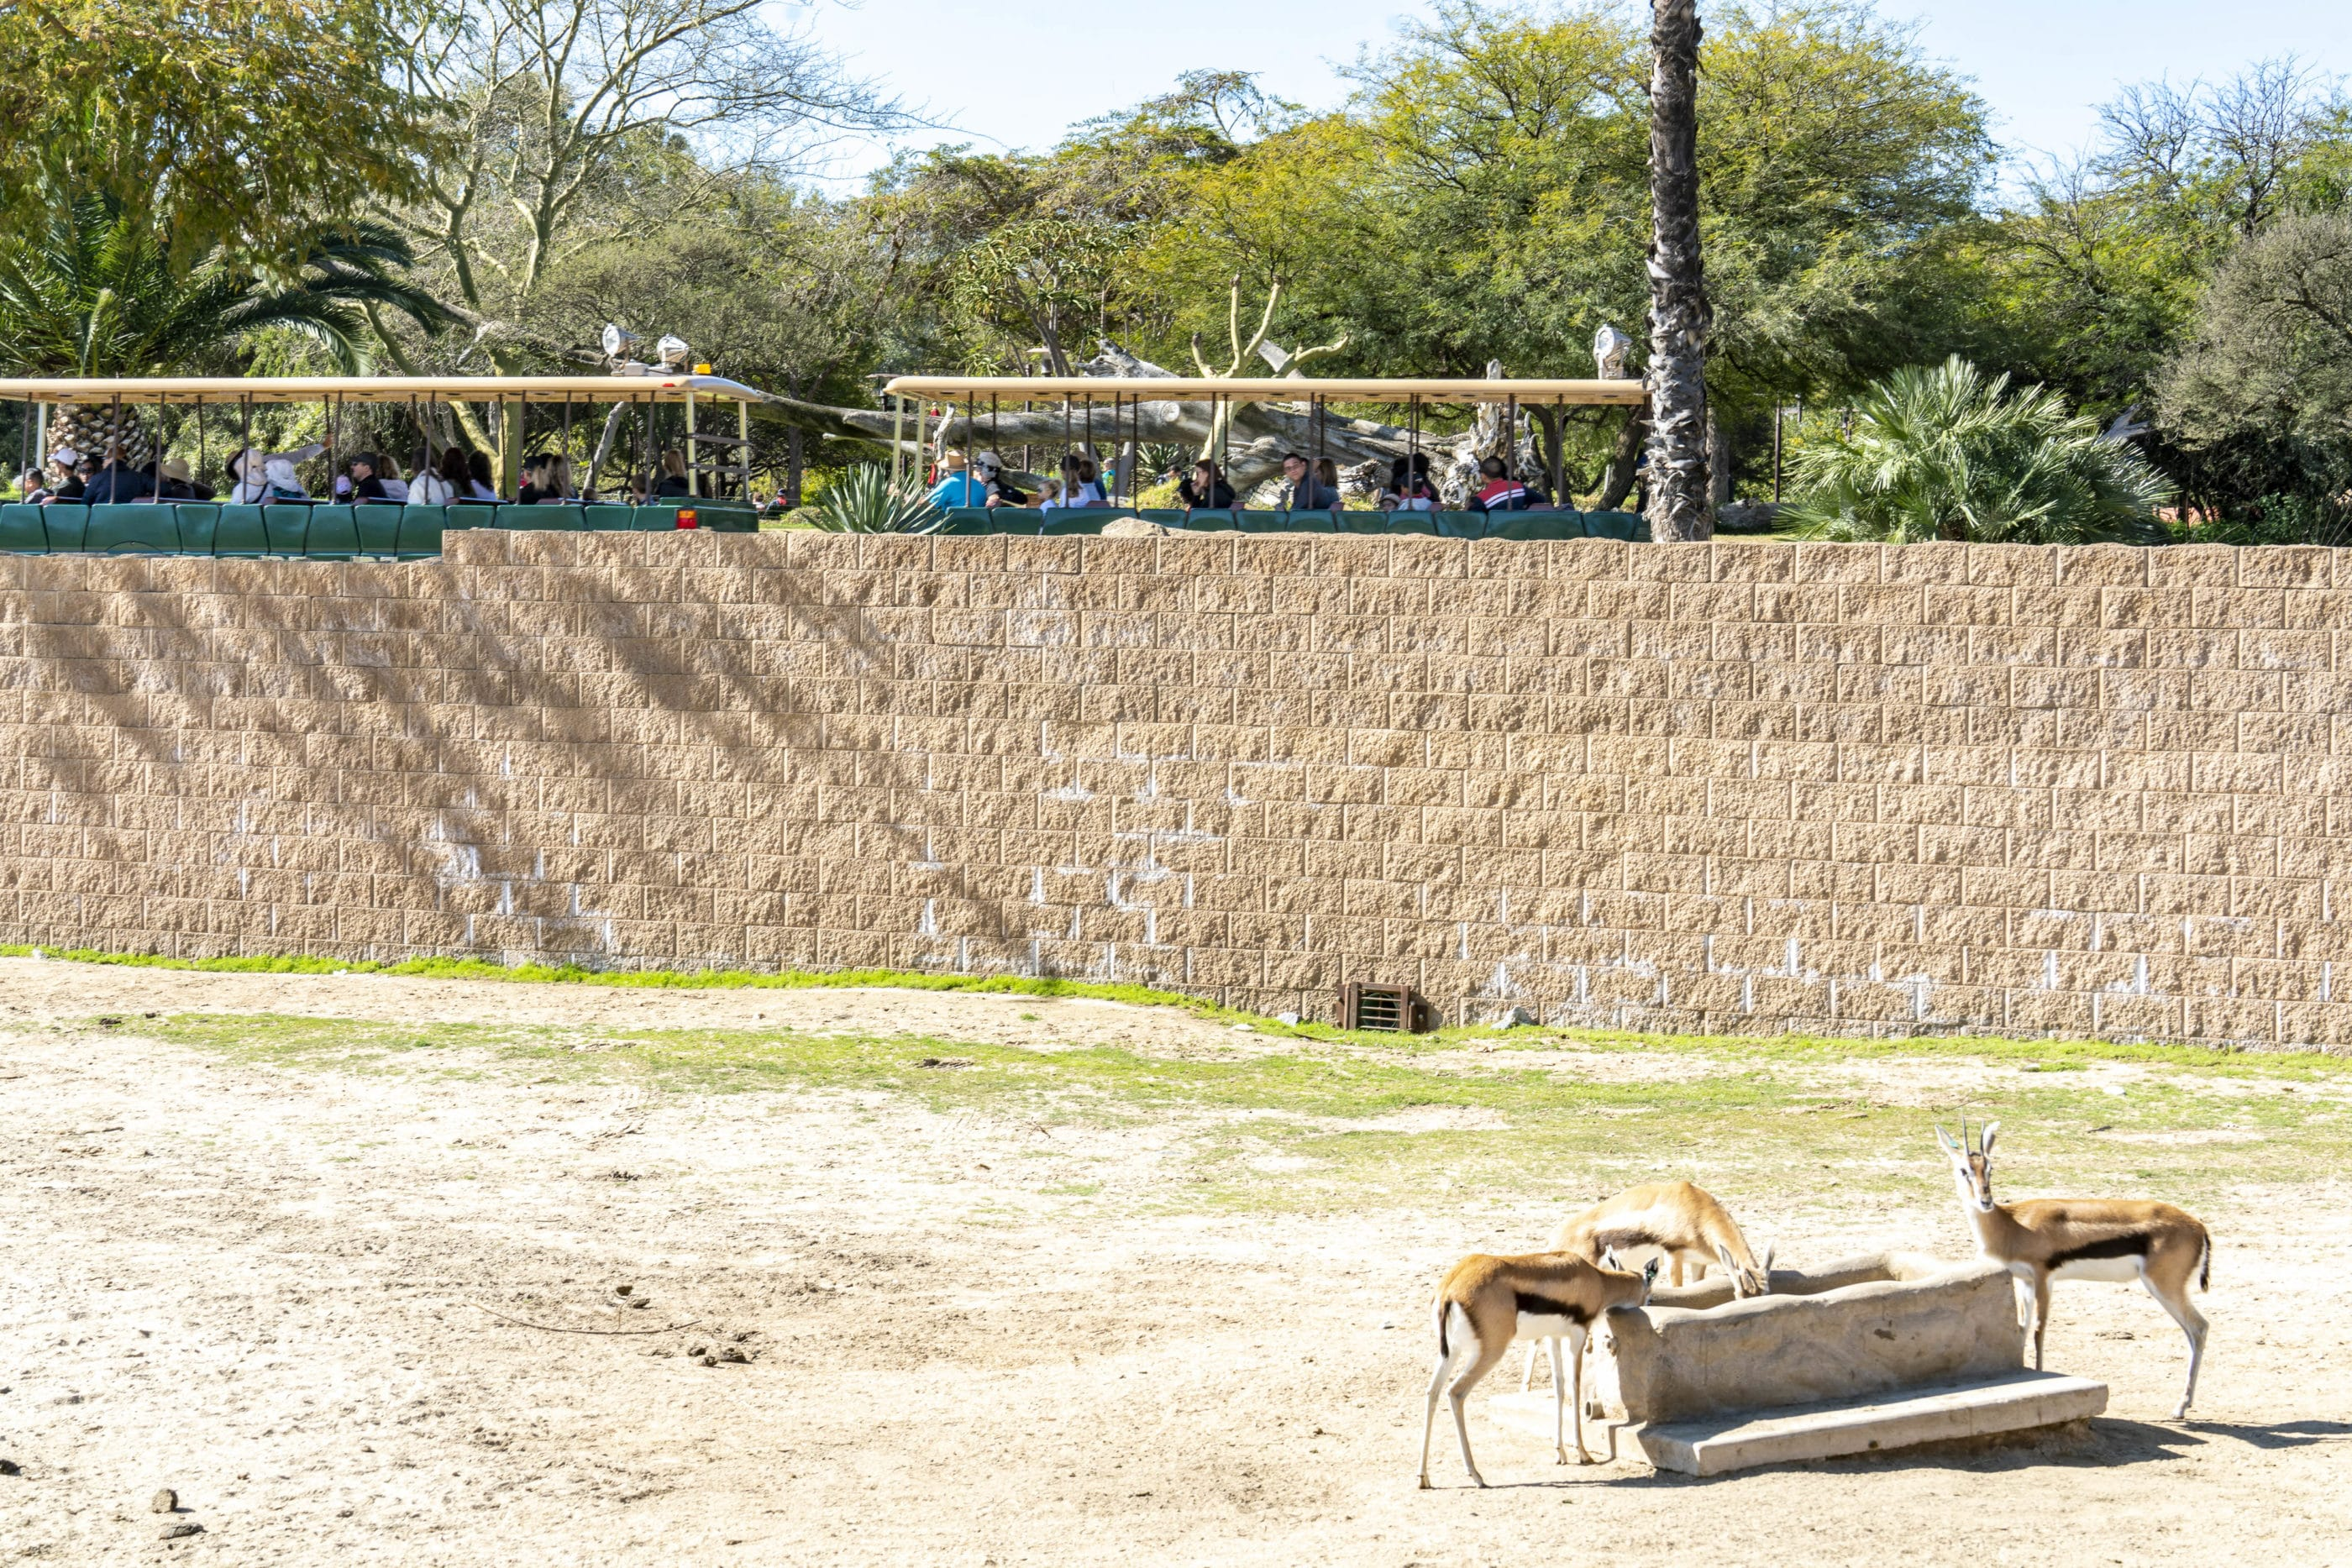 The Africa Tram passes by a large field exhibit as a type of deer drink from a trough.